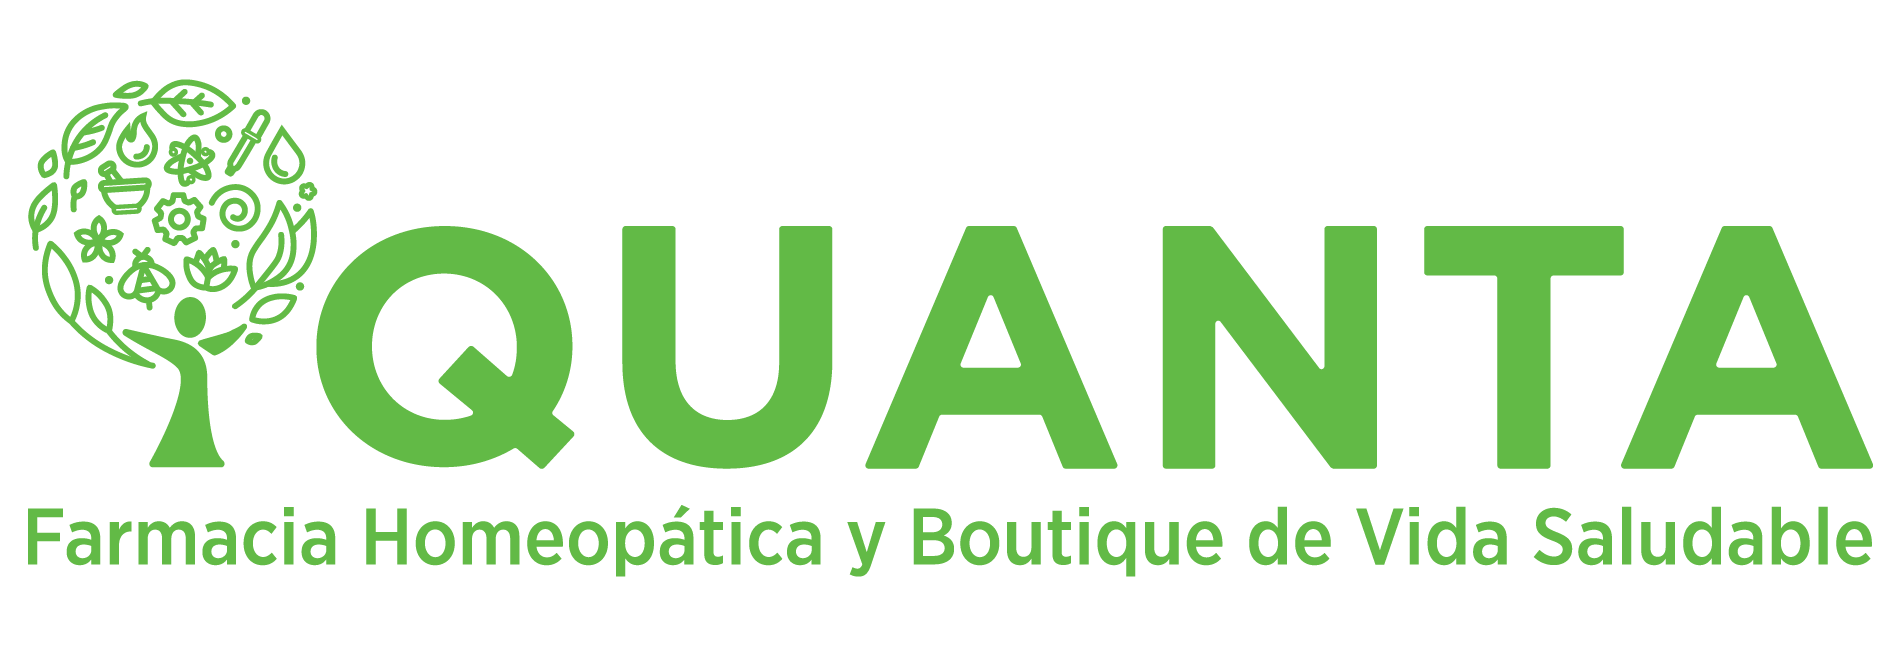 Quanta - Boutique de Vida Saludable y Farmacia Homeopatica